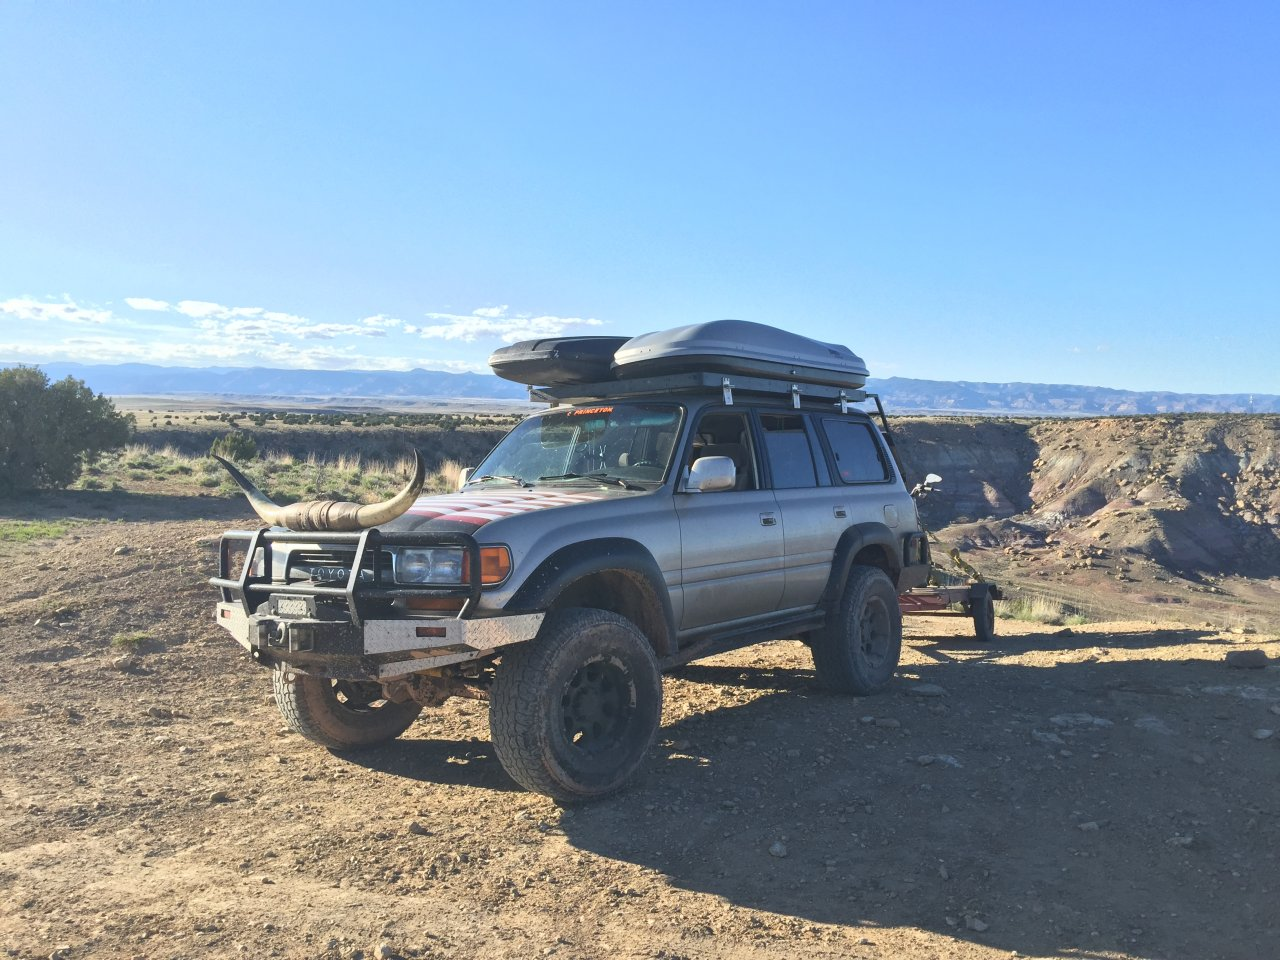 1993 ls swap 6 0l lq4 and built 4l60e ih8mud forum some pictures of my rig on her final journey prior to tear down